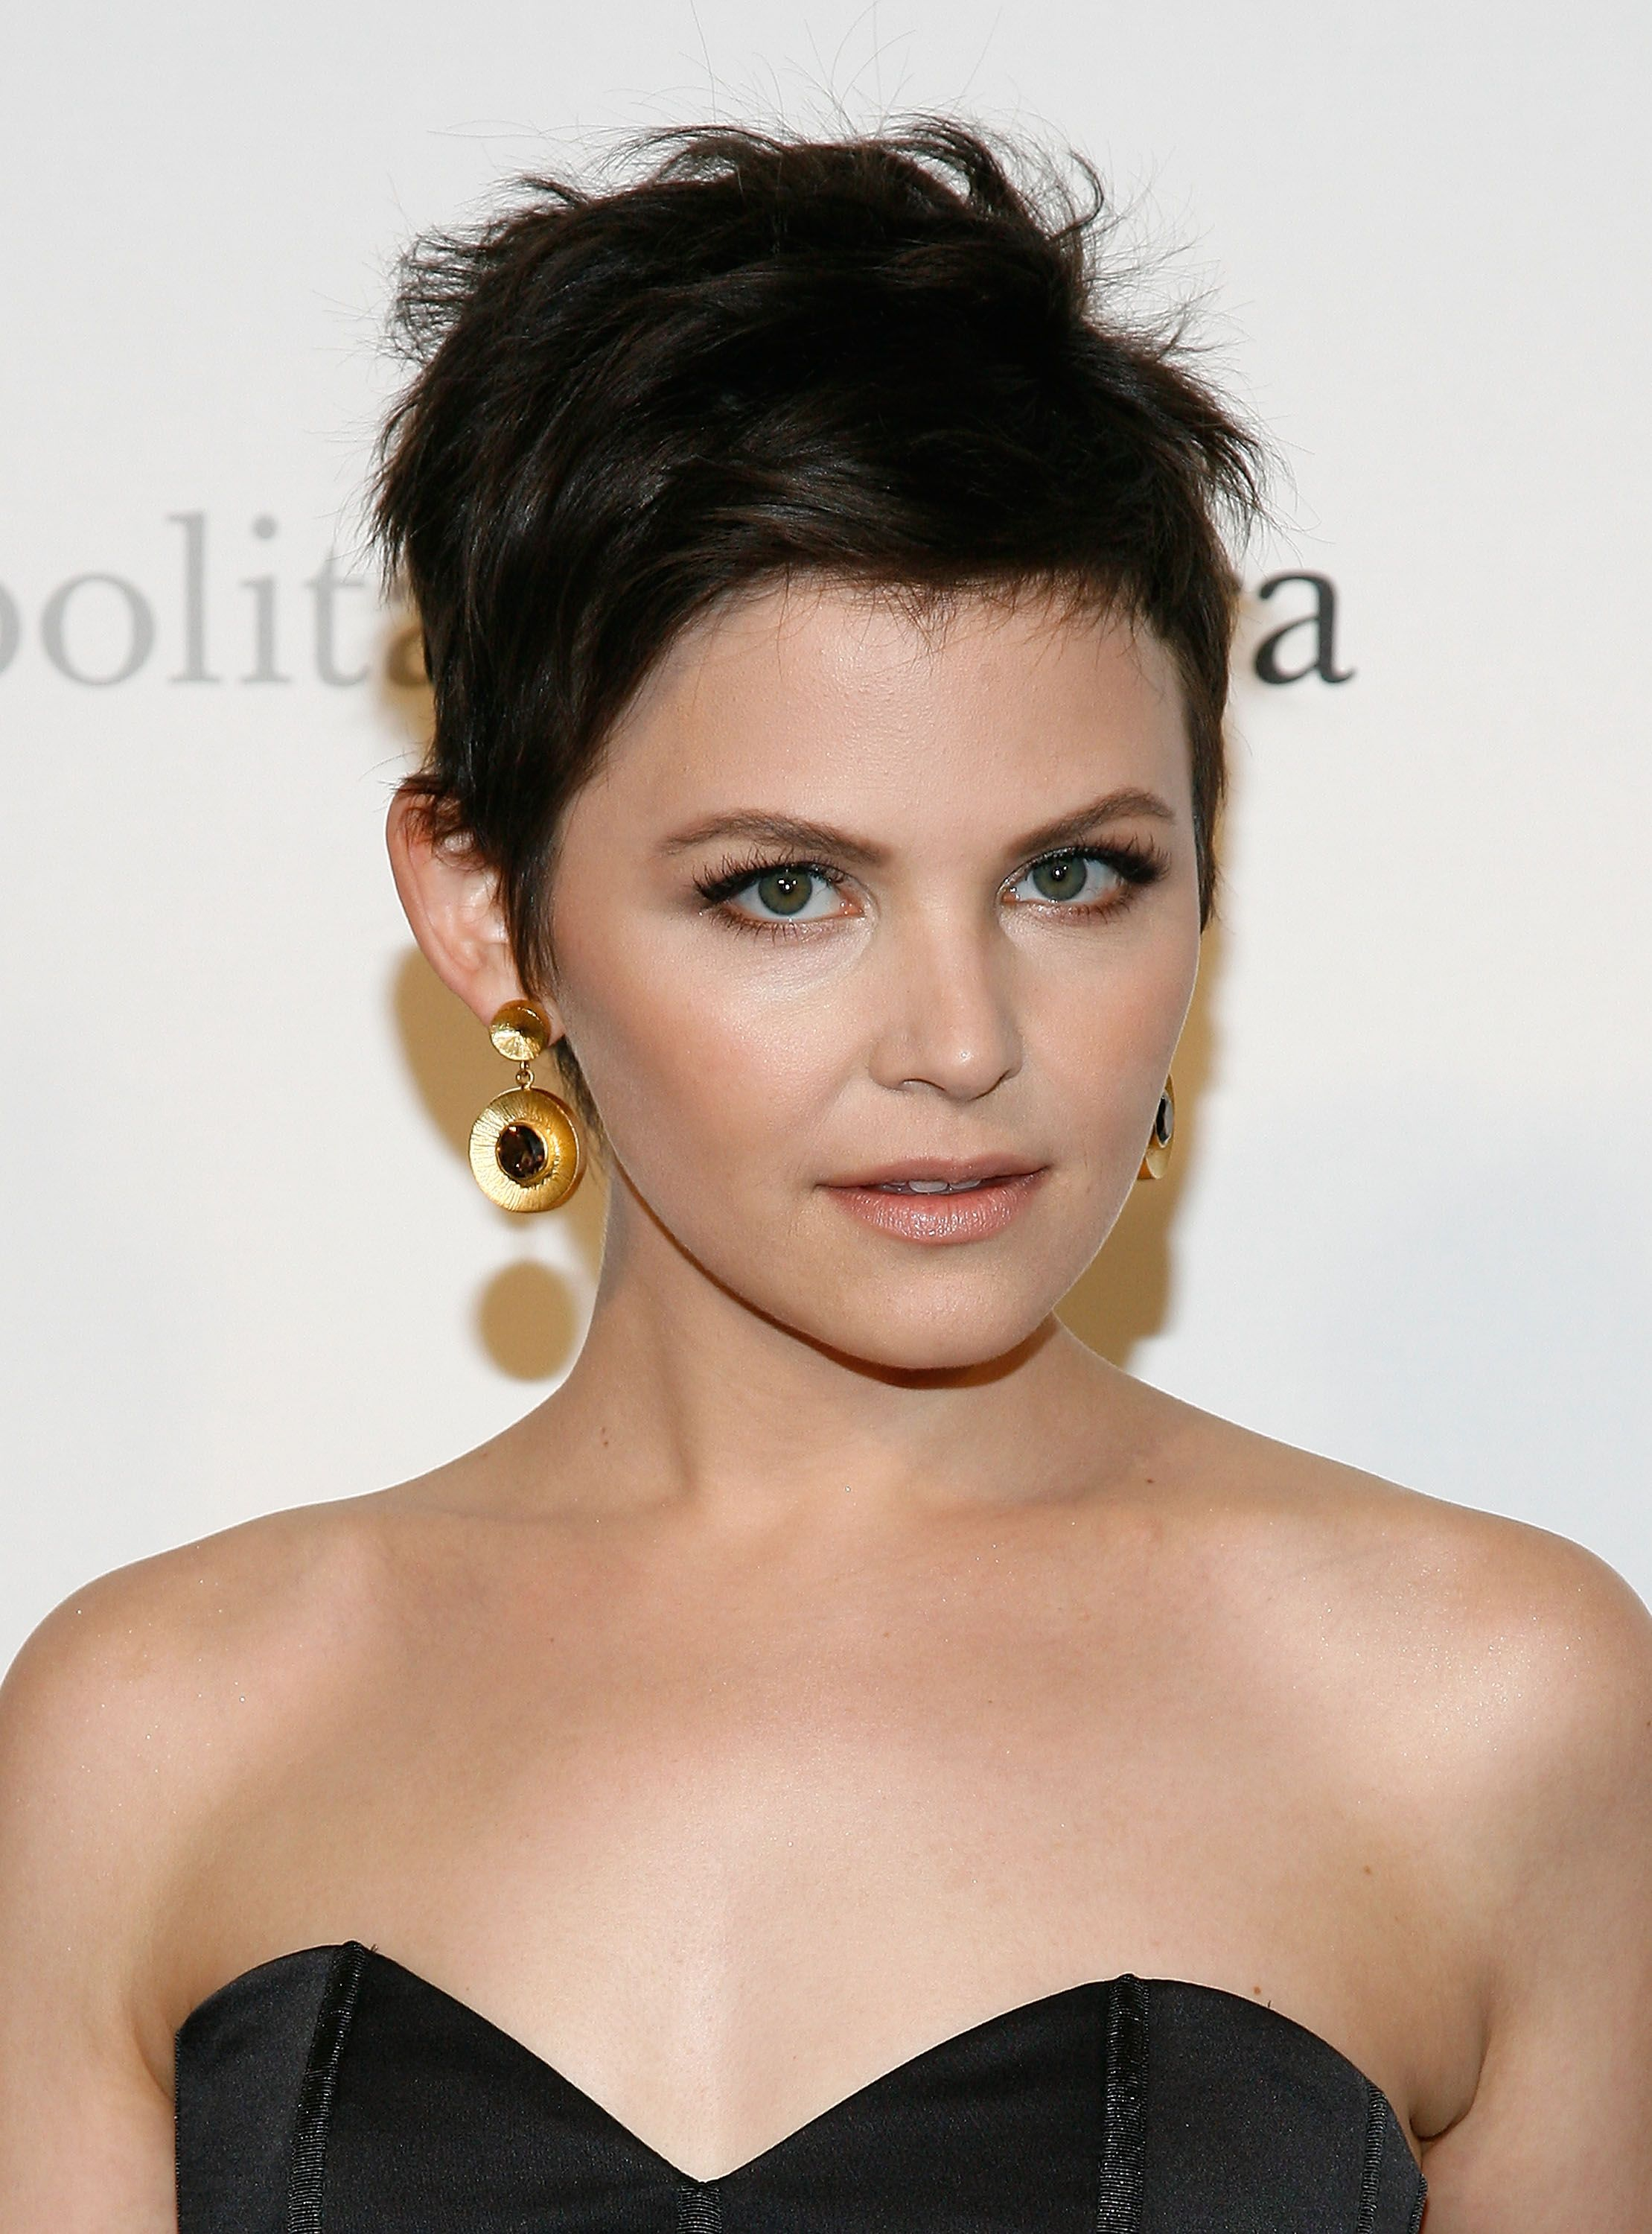 Short Choppy Hairstyles For Round Faces : short, choppy, hairstyles, round, faces, Short, Hairstyles, Round, Faces, Pixie,, Haircuts